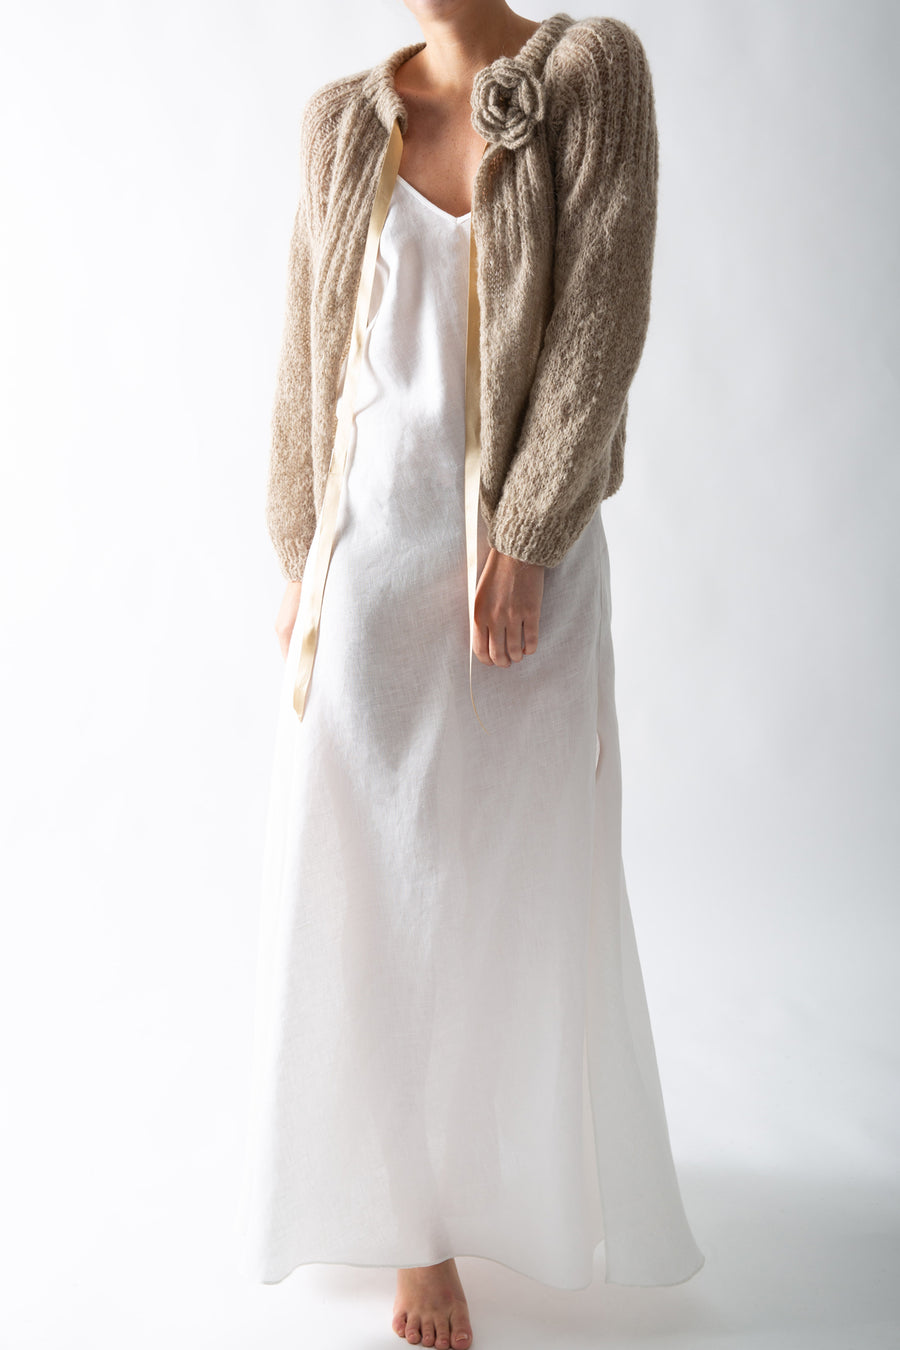 This is a photo of a woman wearing a white linen slip dress with a handmade pleated brown khaki colored cardigan. The cardigan is worn open and has a flower pin on one shoulder.